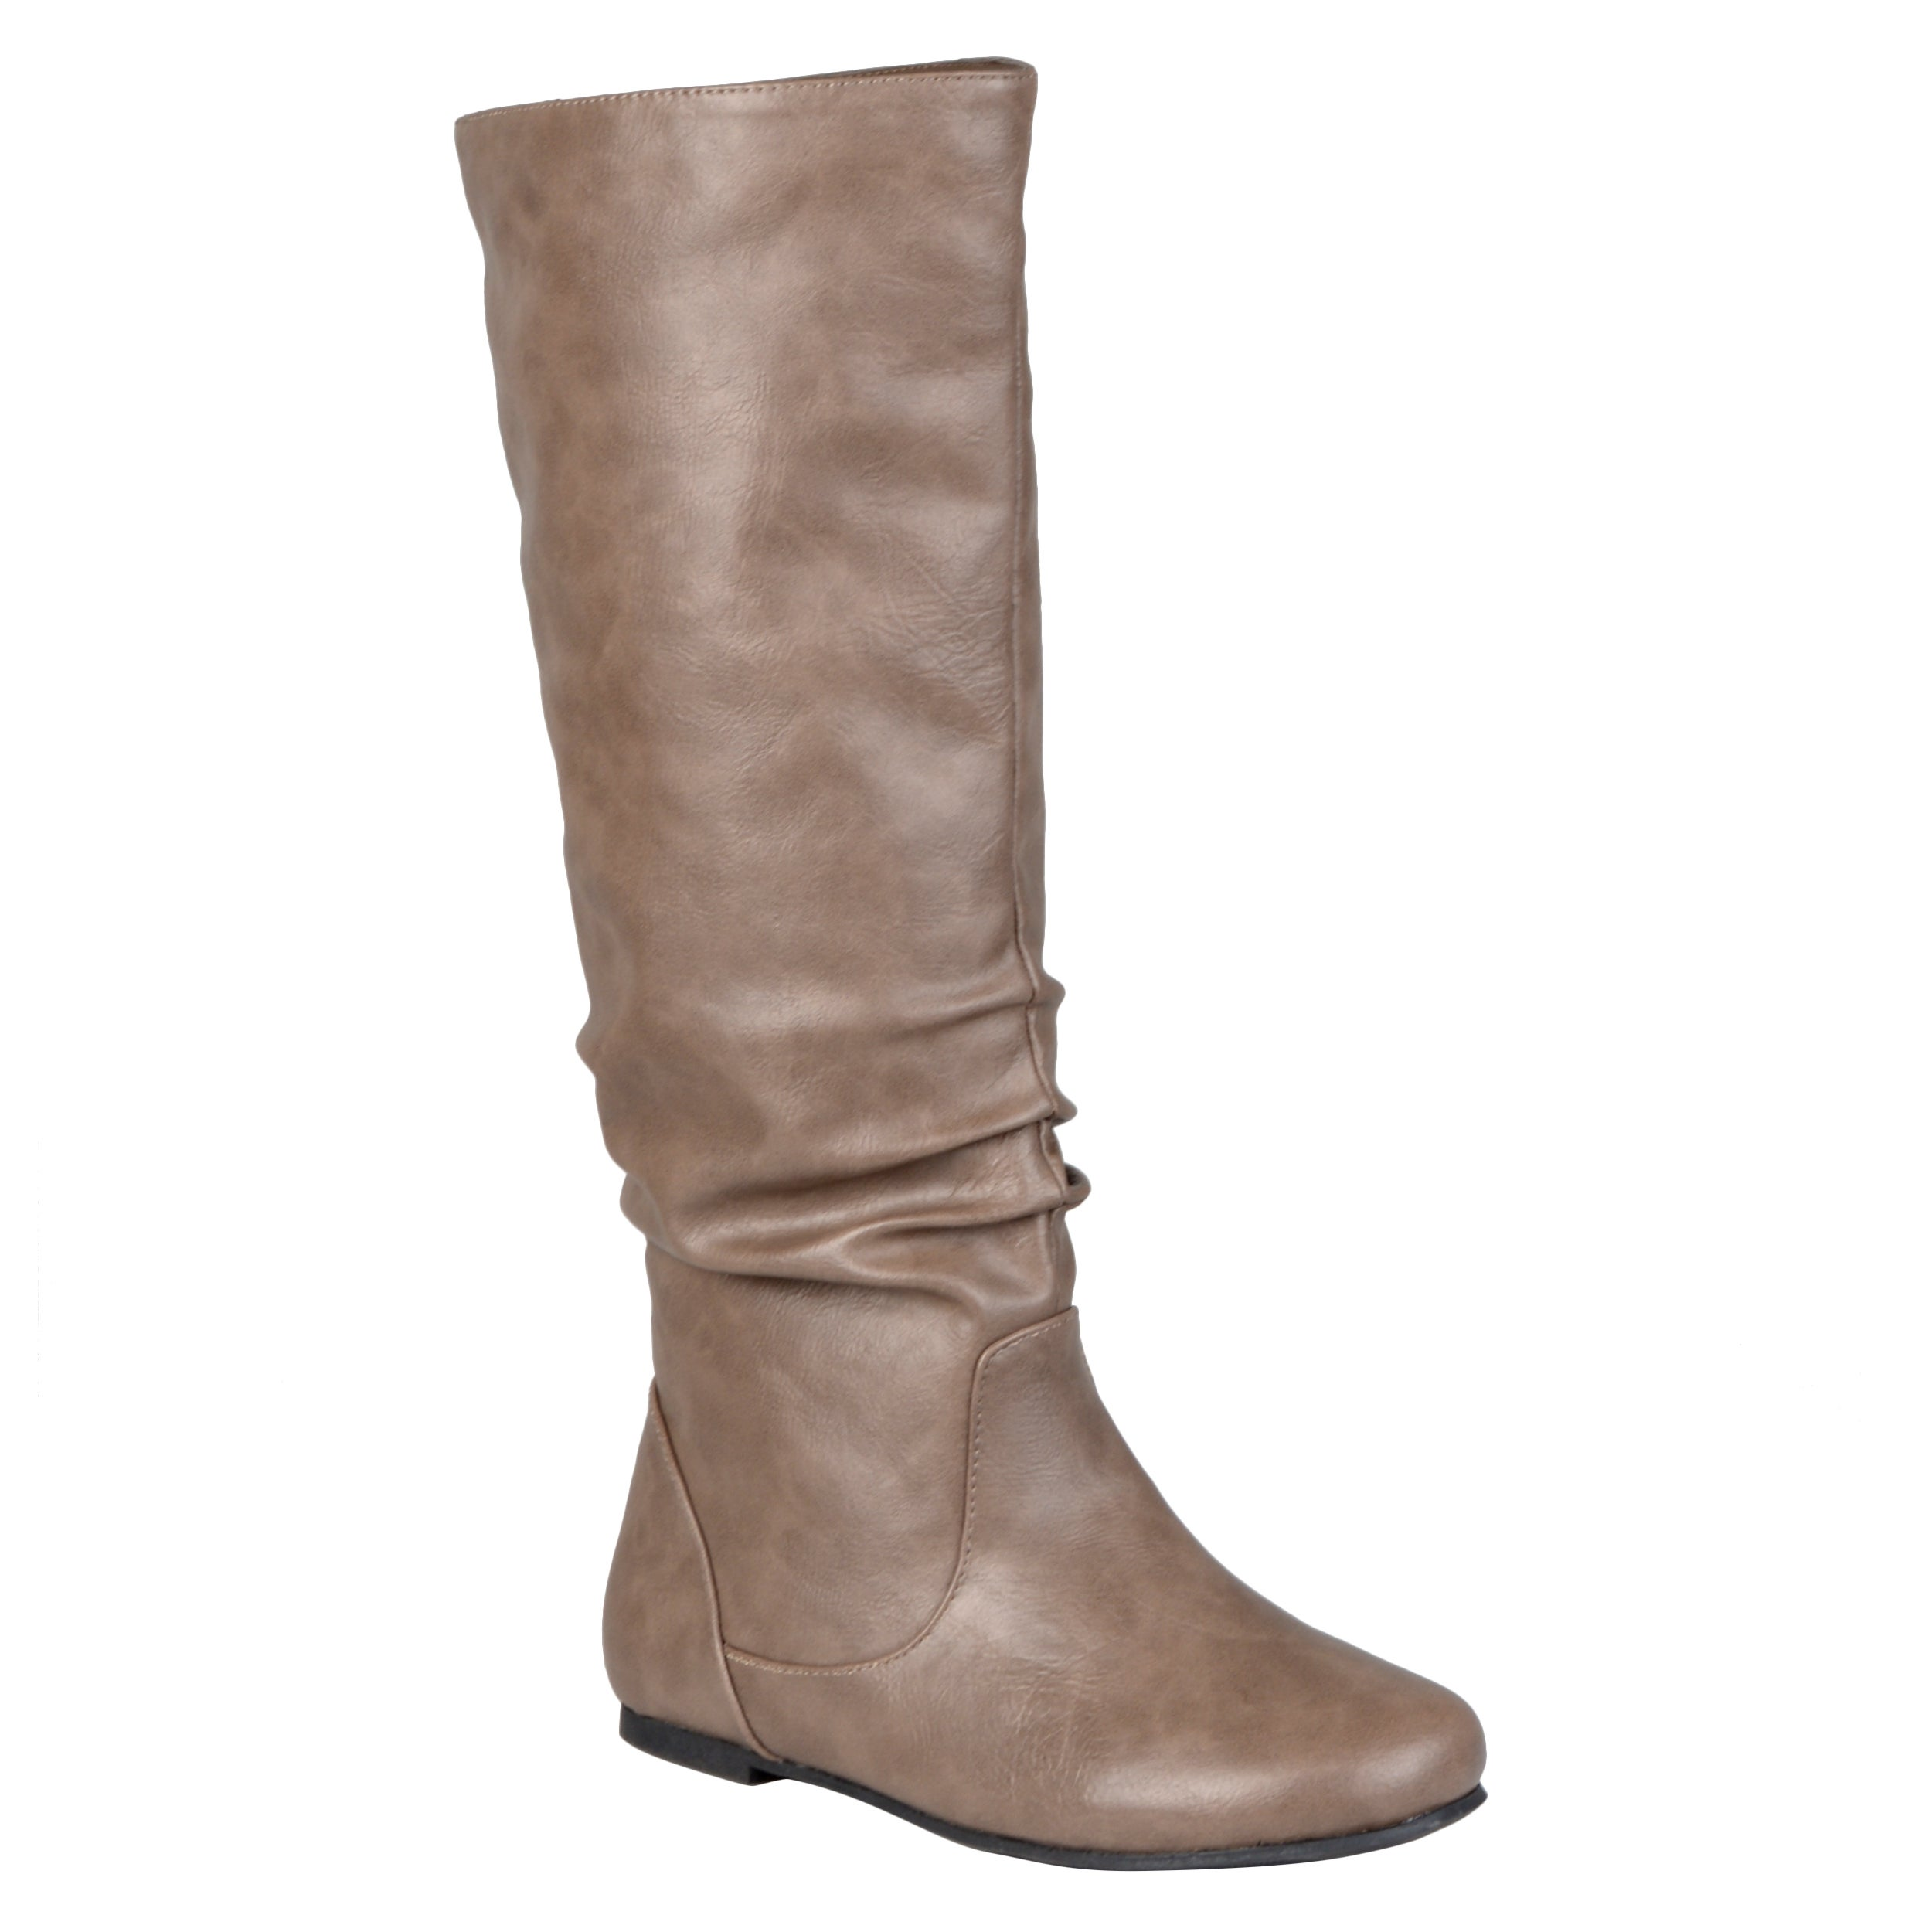 84a4d14bc4de Journee Collection Women s  Jayne  Regular and Wide-calf Mid-Calf Slouch  Riding Boots